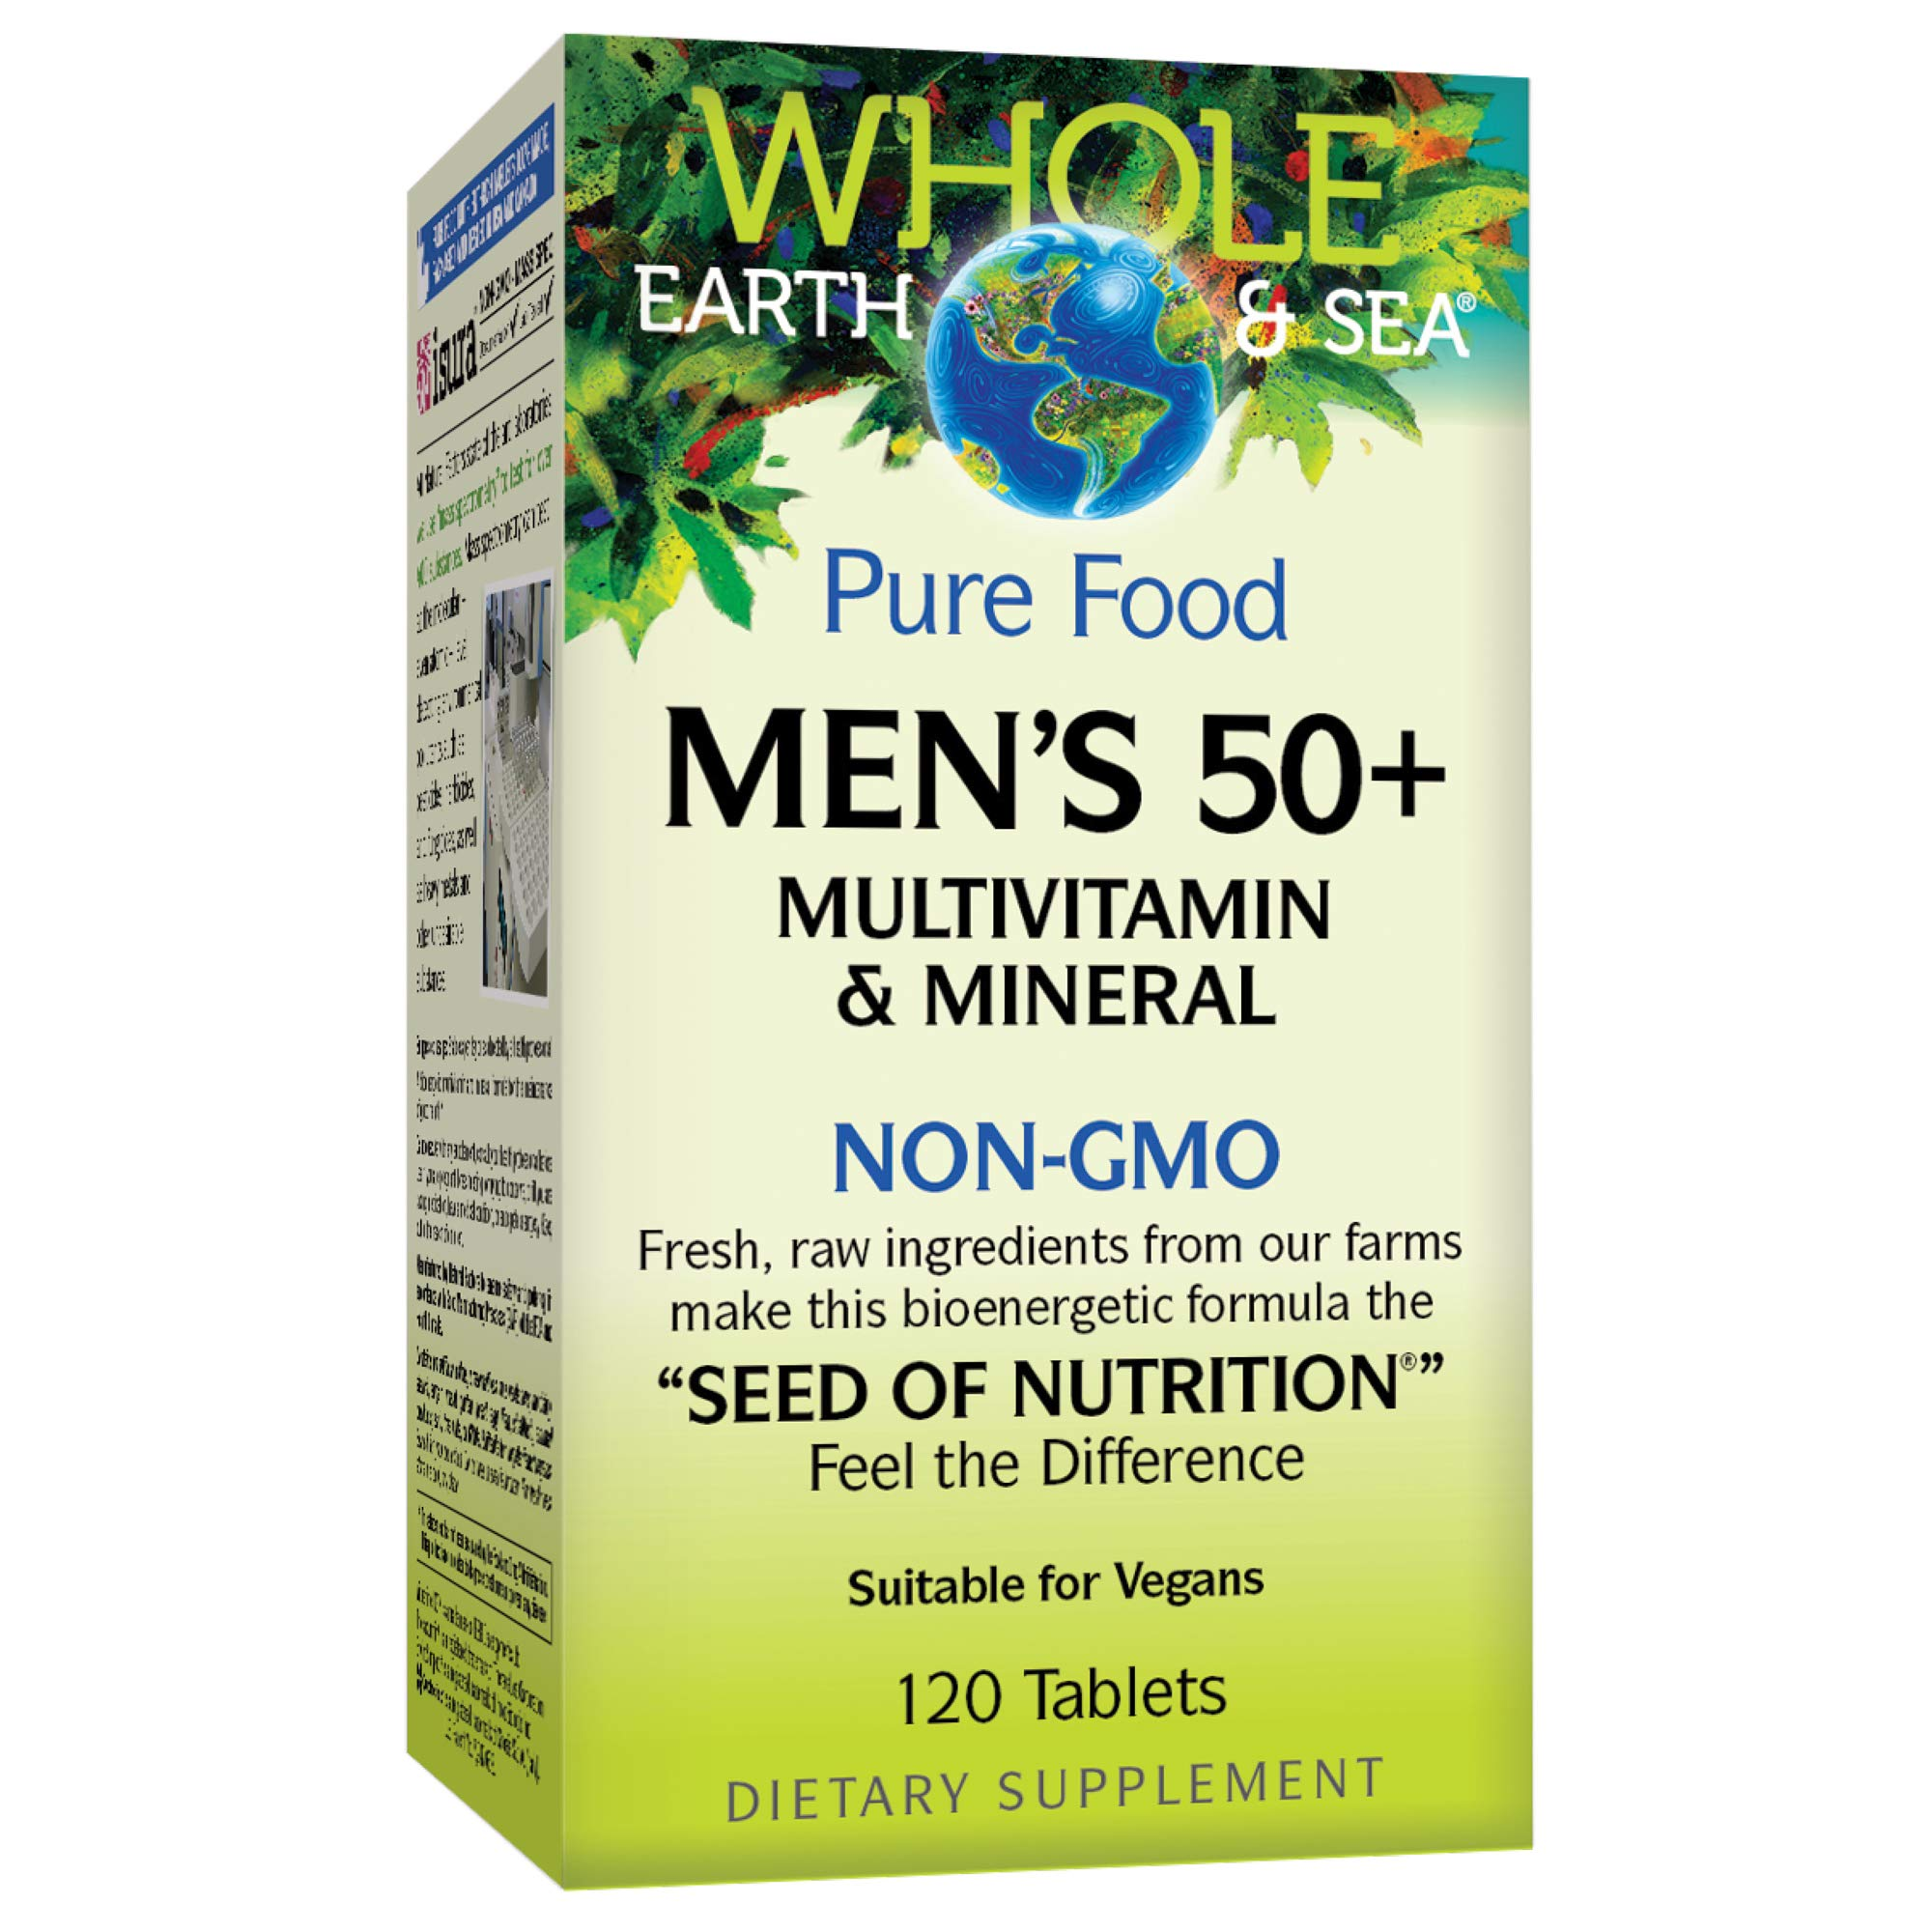 Whole Earth & Sea from Natural Factors, Men's 50+ Multivitamin & Mineral, Whole Food Supplement, Vegan and Gluten Free, 120 Tablets (60 Servings) by Natural Factors